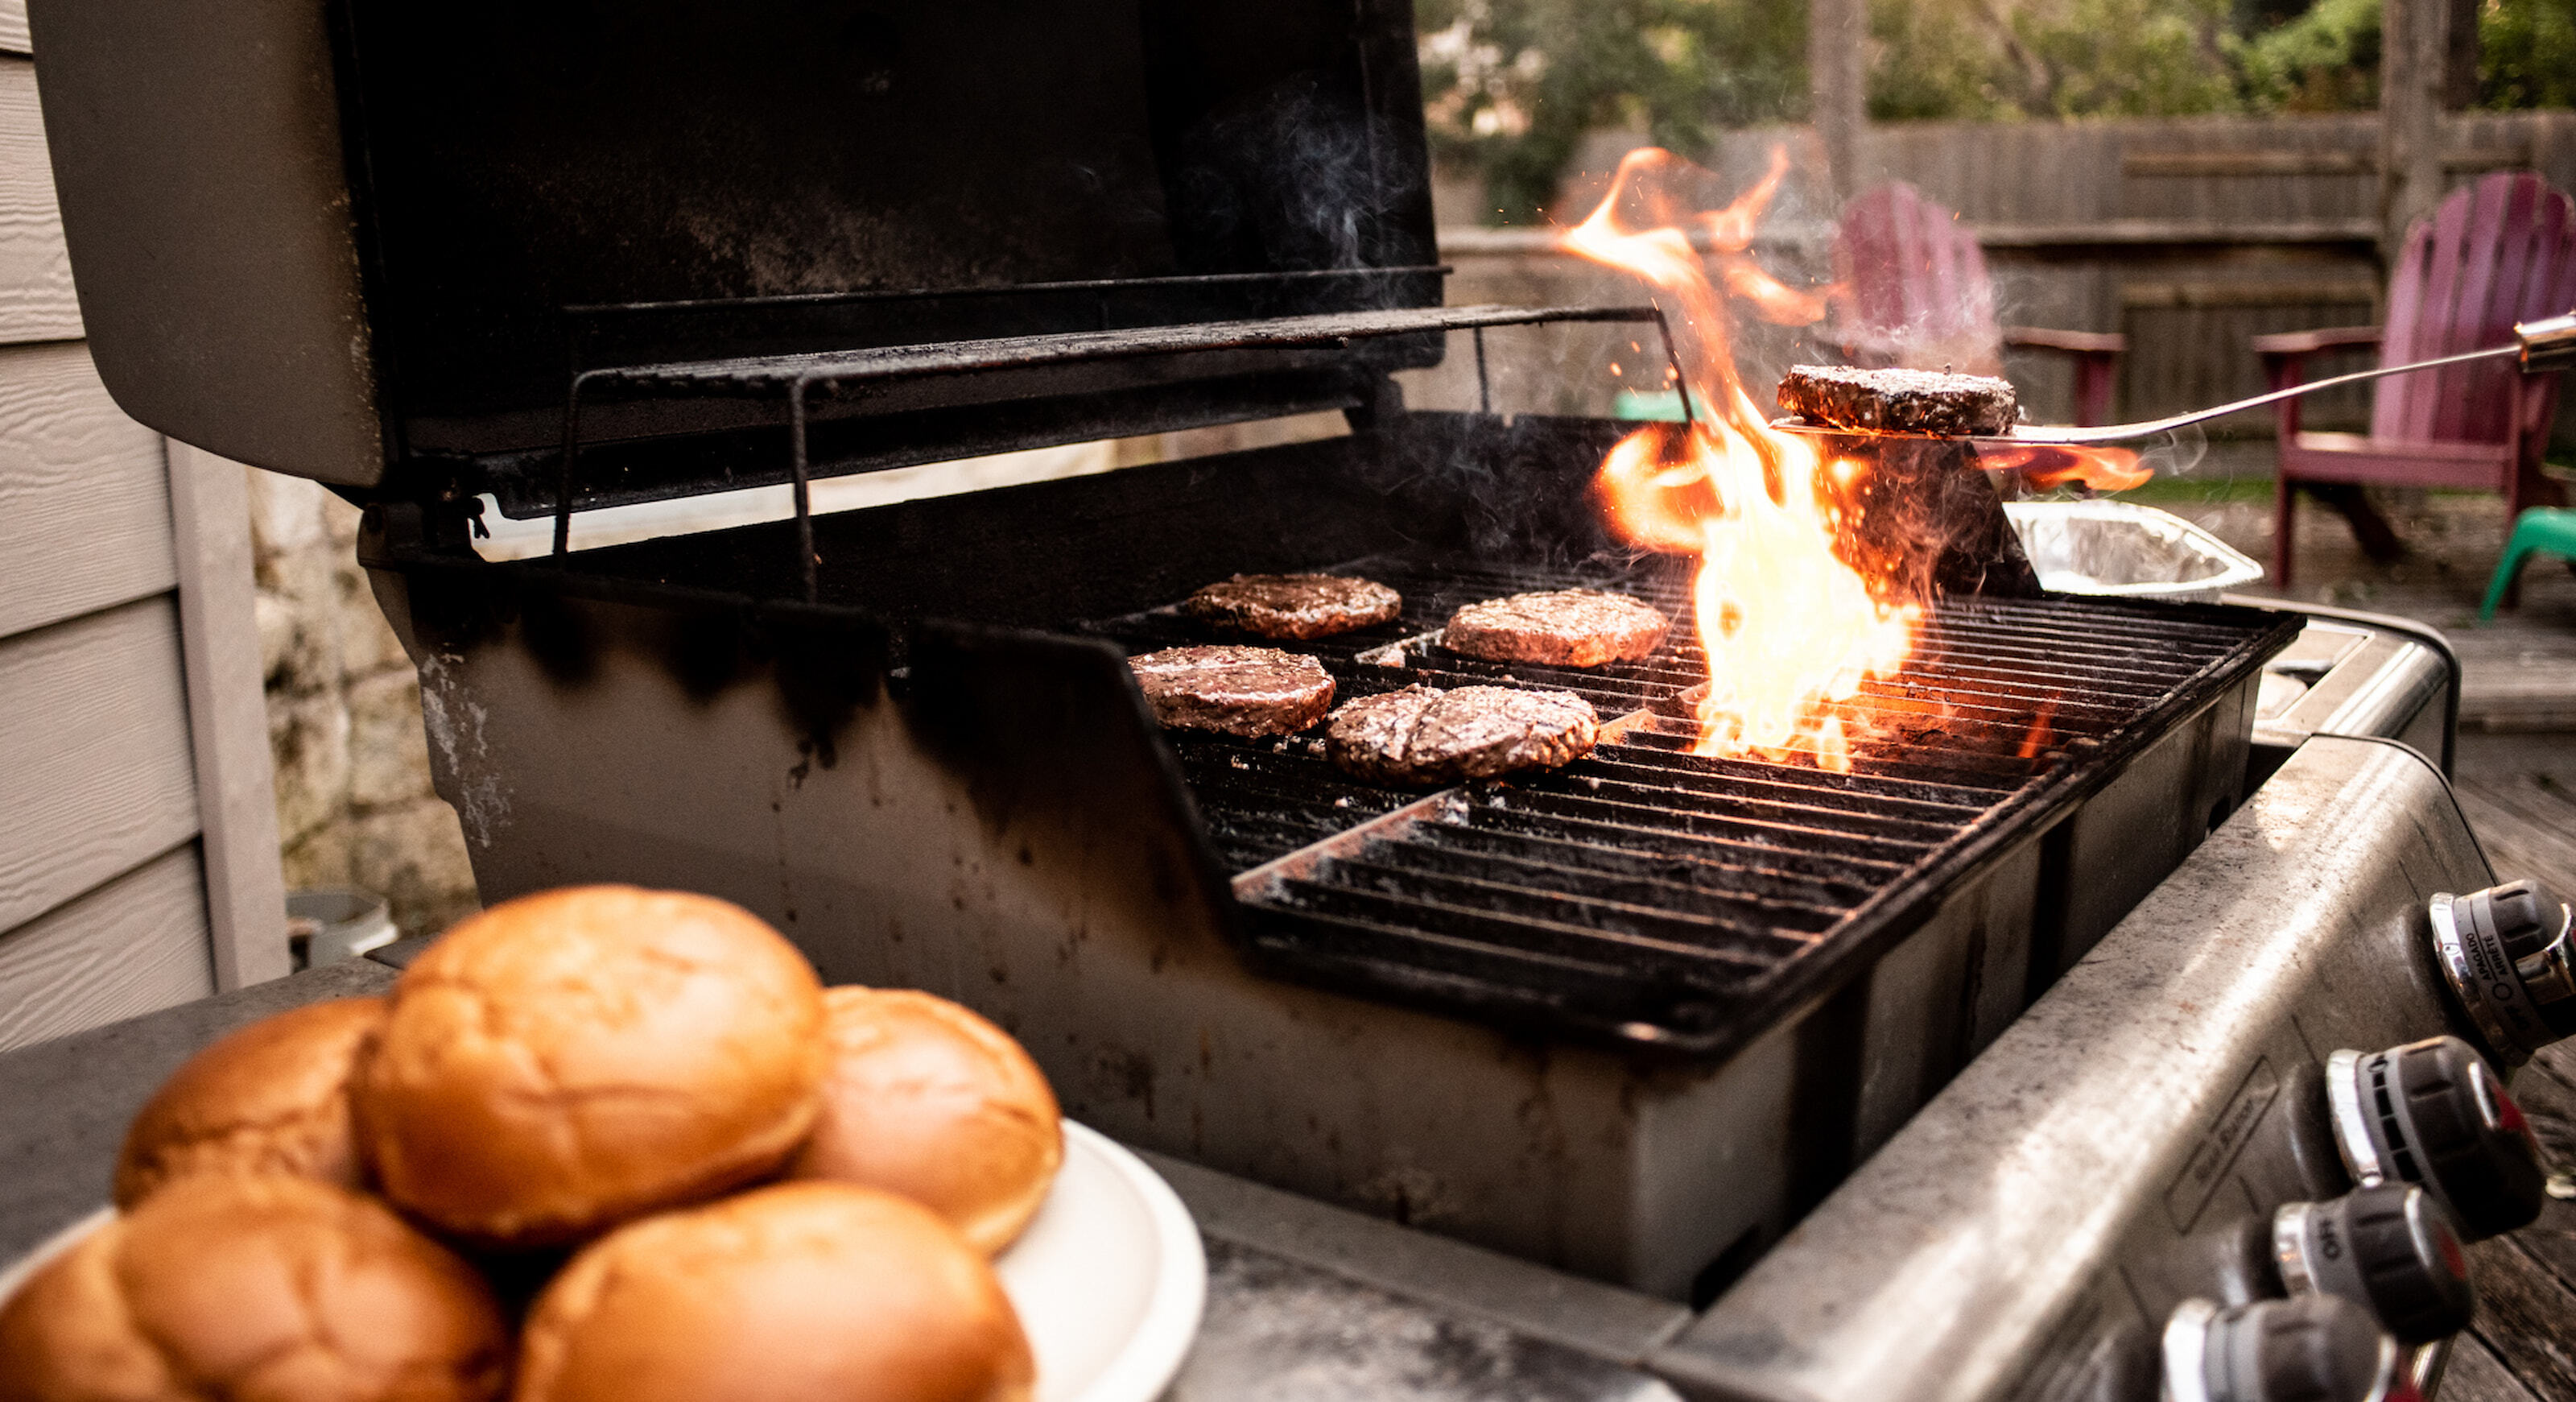 Burgers grilling.